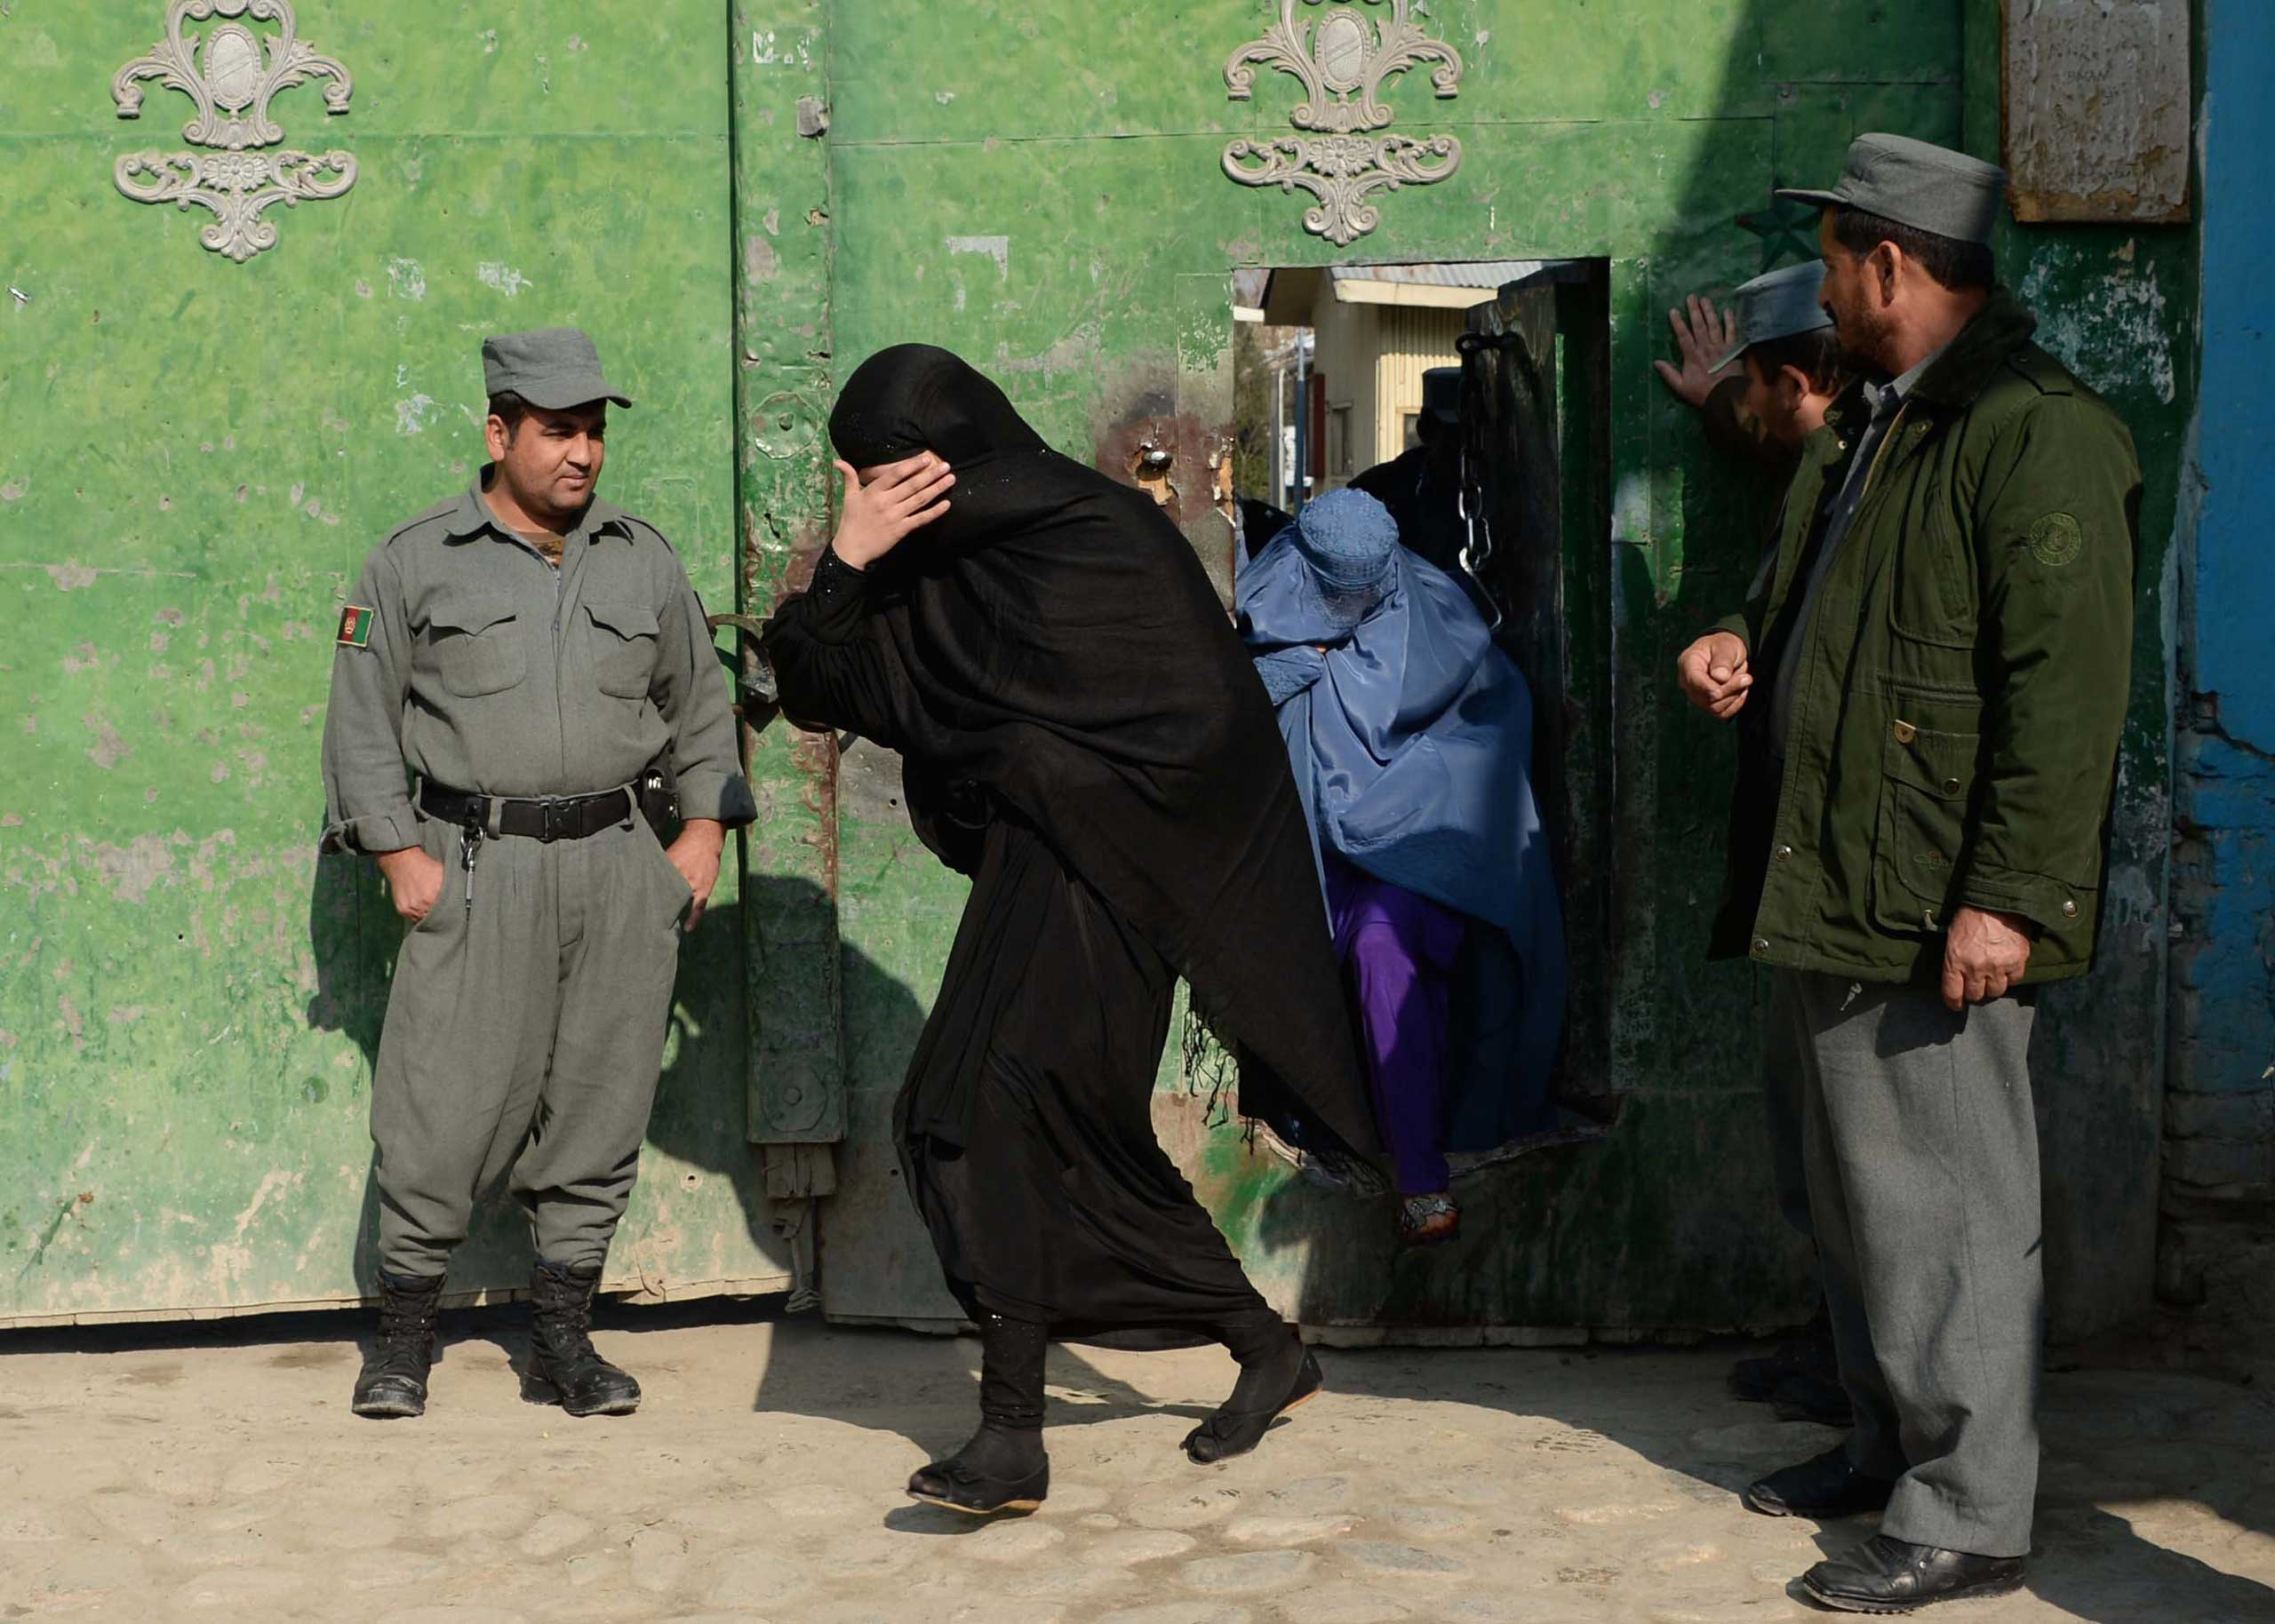 Jan. 15, 2015. Newly-released Afghan prisoners leave a prison in Jalalabad. Over thirty prisoners, including seven women, were released following a decree issued by President Ashraf Ghani to observe the Prophet Mohammad's birthday.